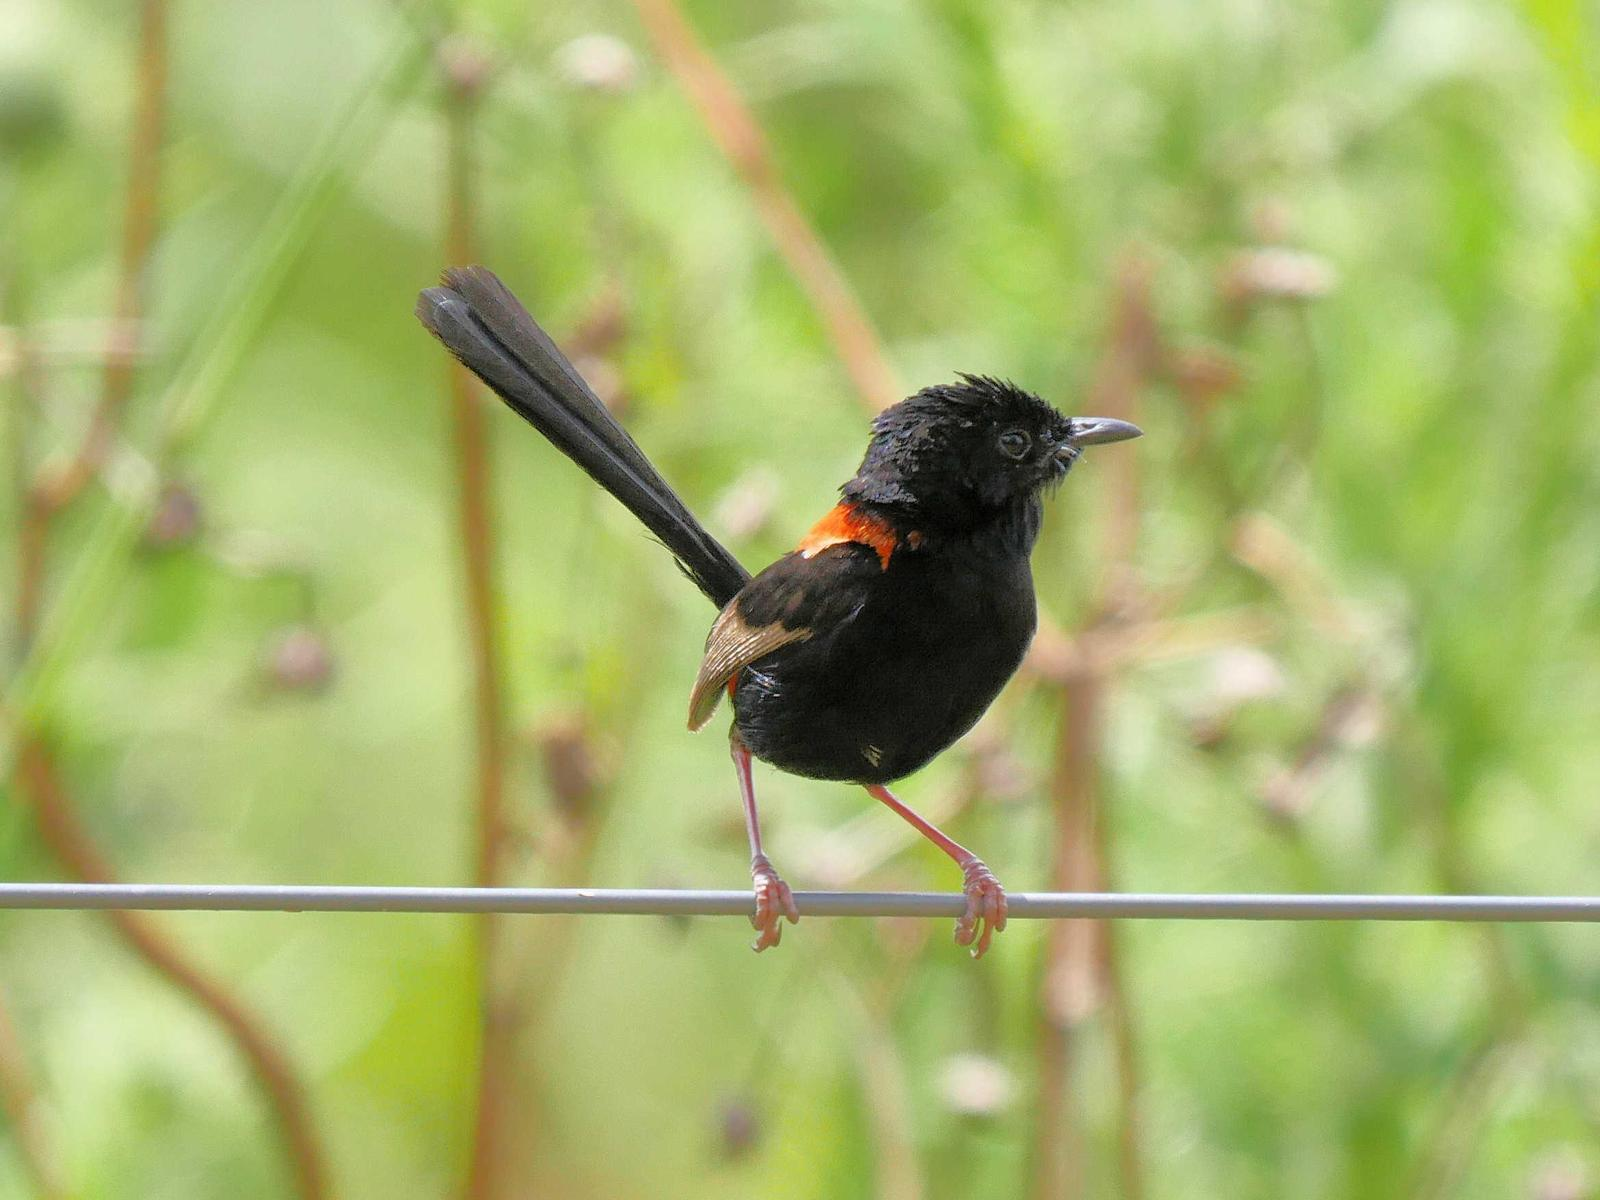 Red-backed Fairywren Photo by Peter Lowe